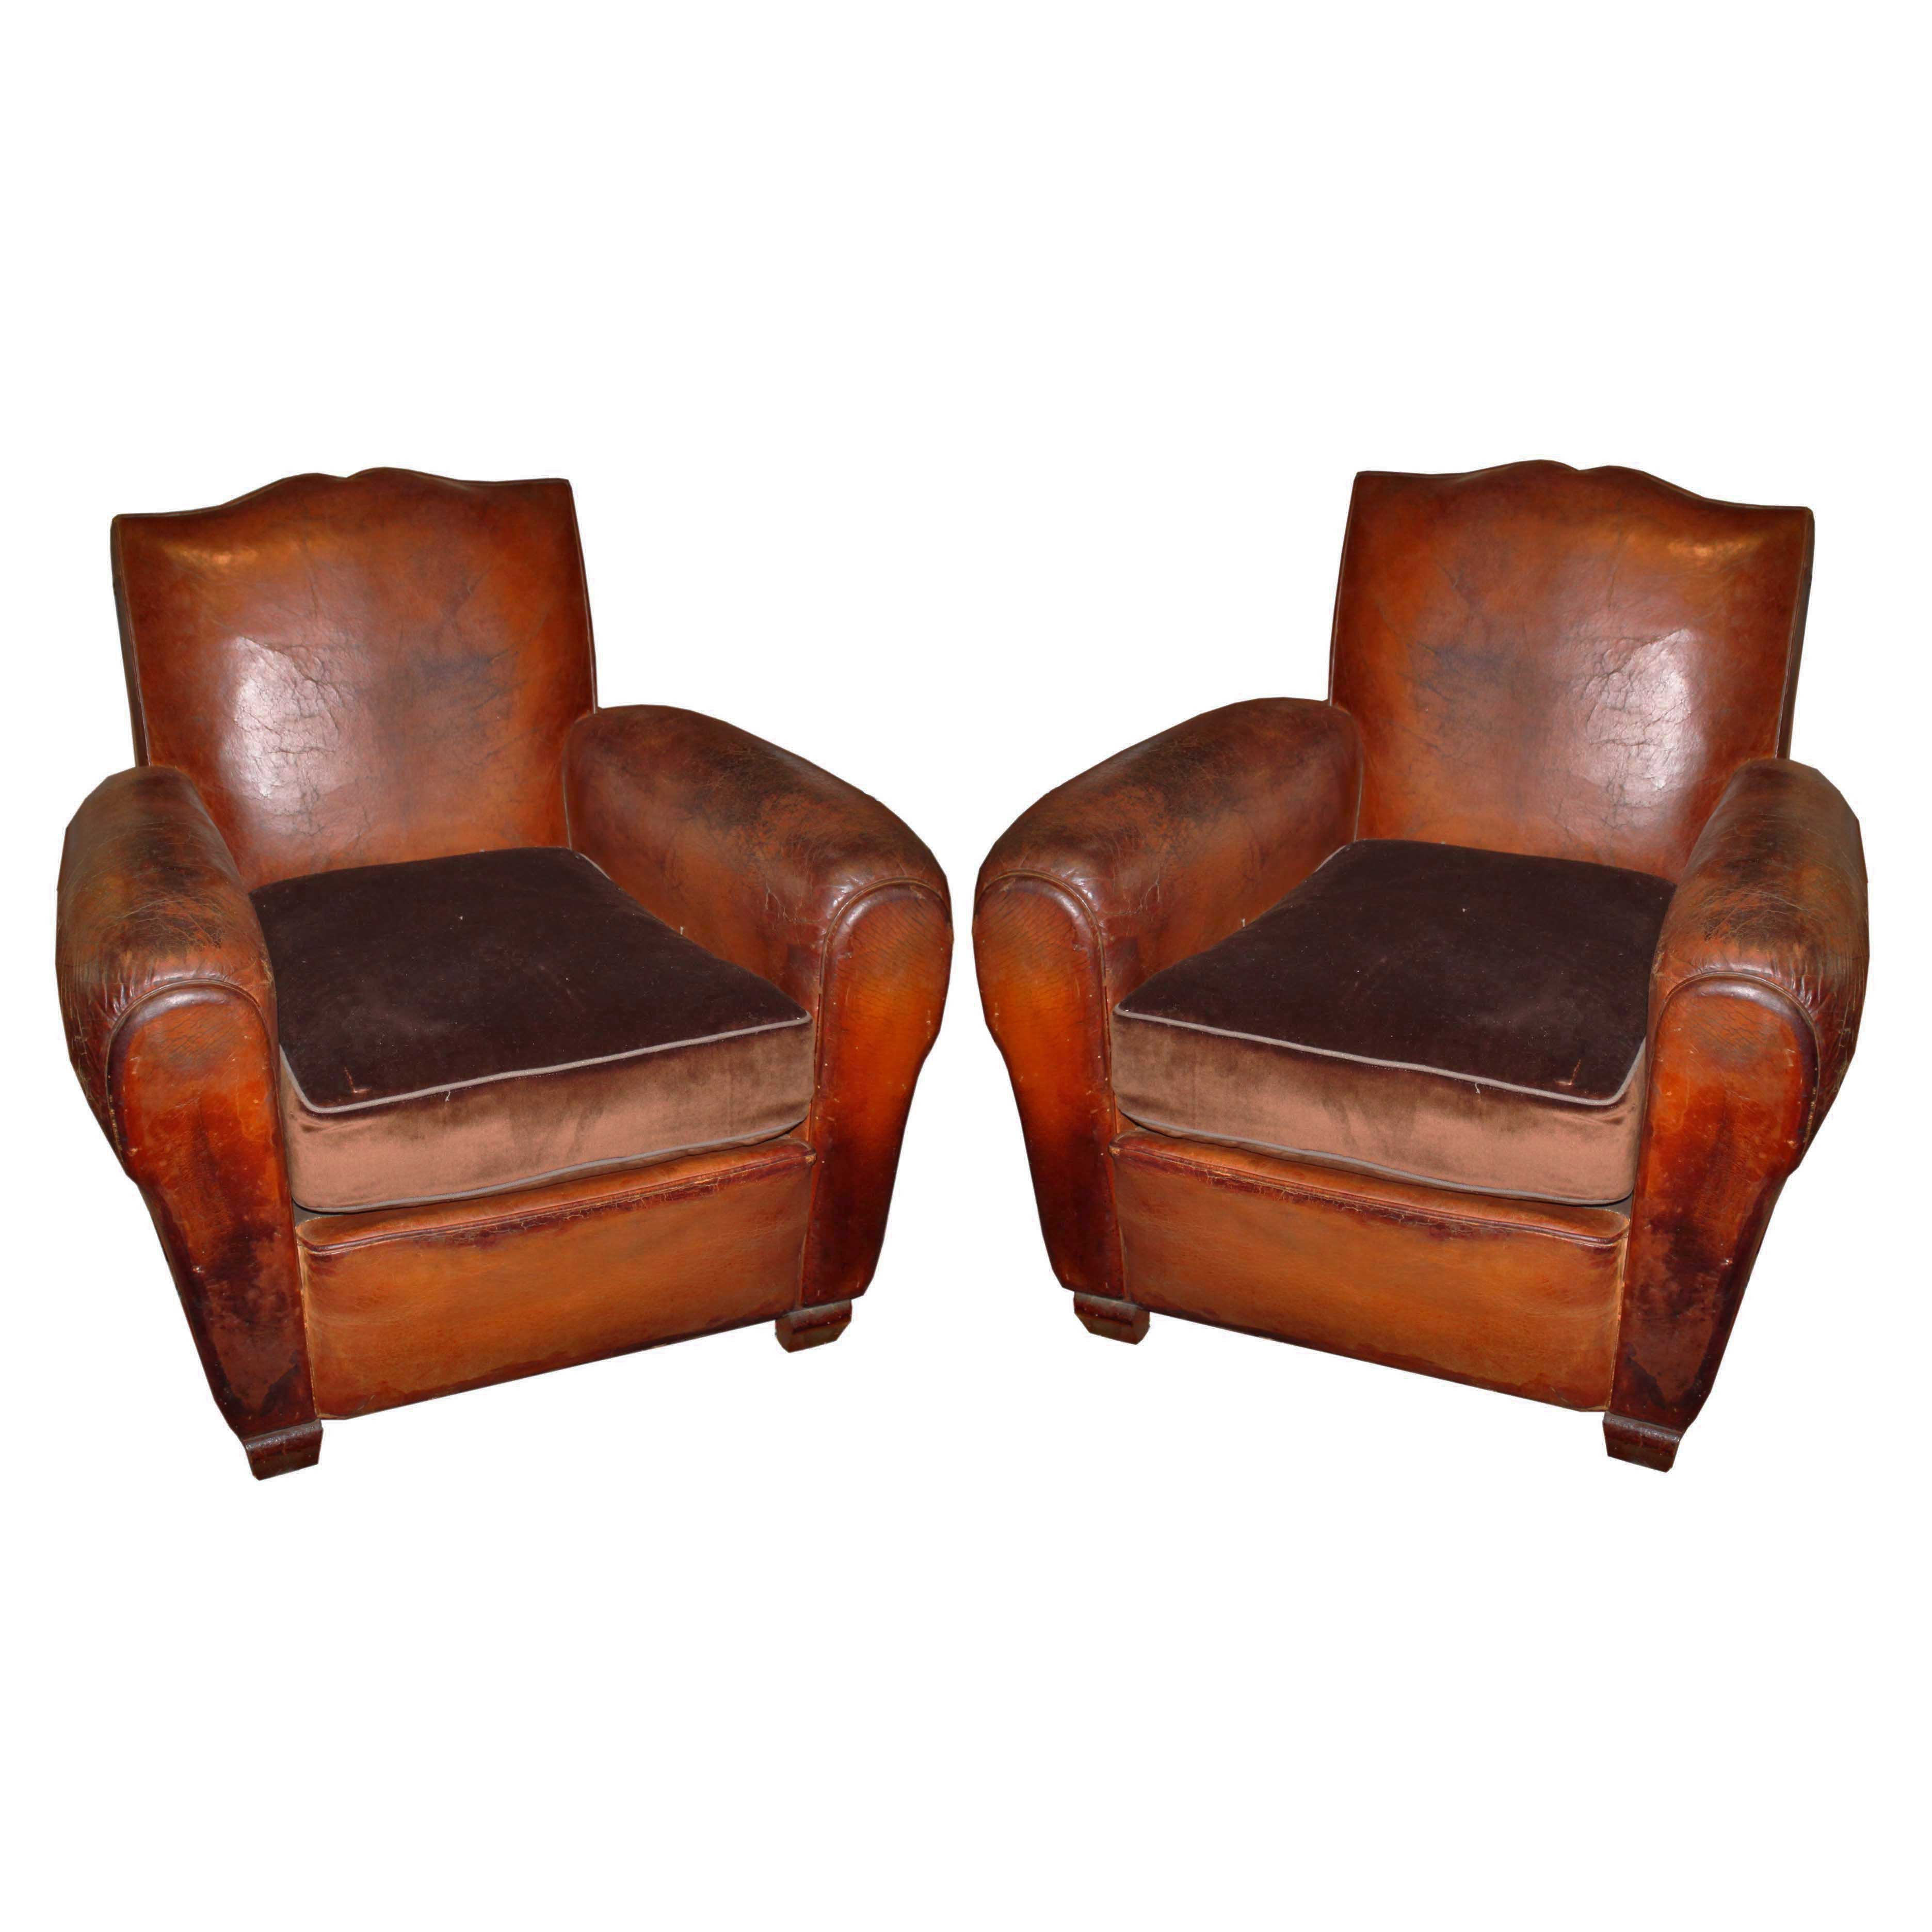 Pair French Leather Club Chairs  Foxglove Antiques